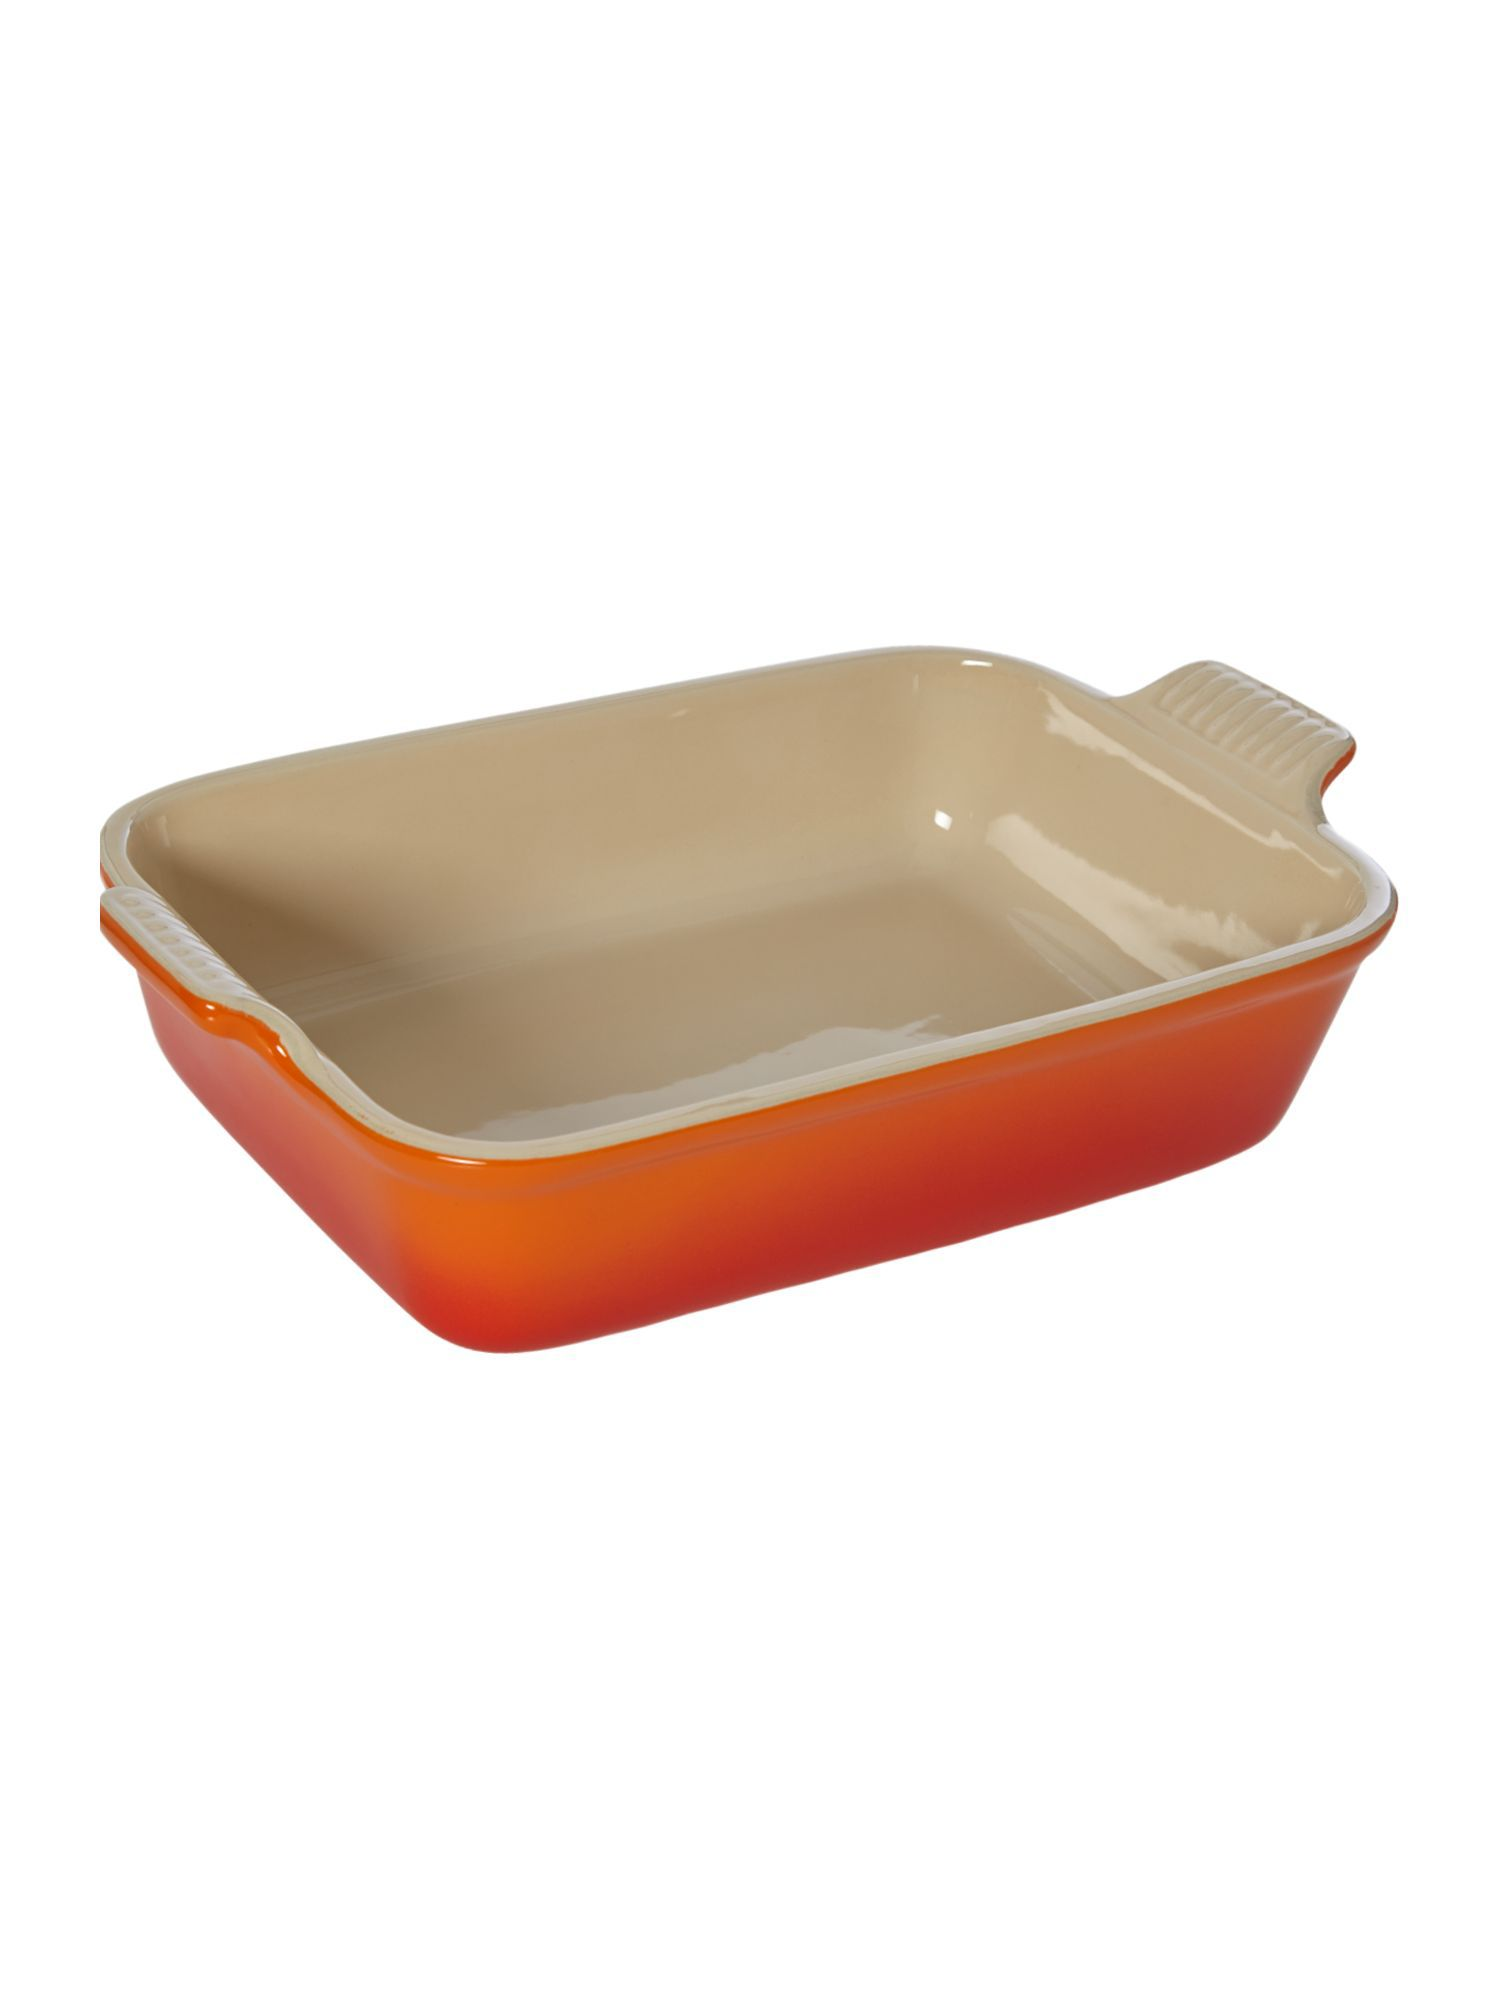 Le Creuset Stoneware Butter Dish | Compare | Bluewater